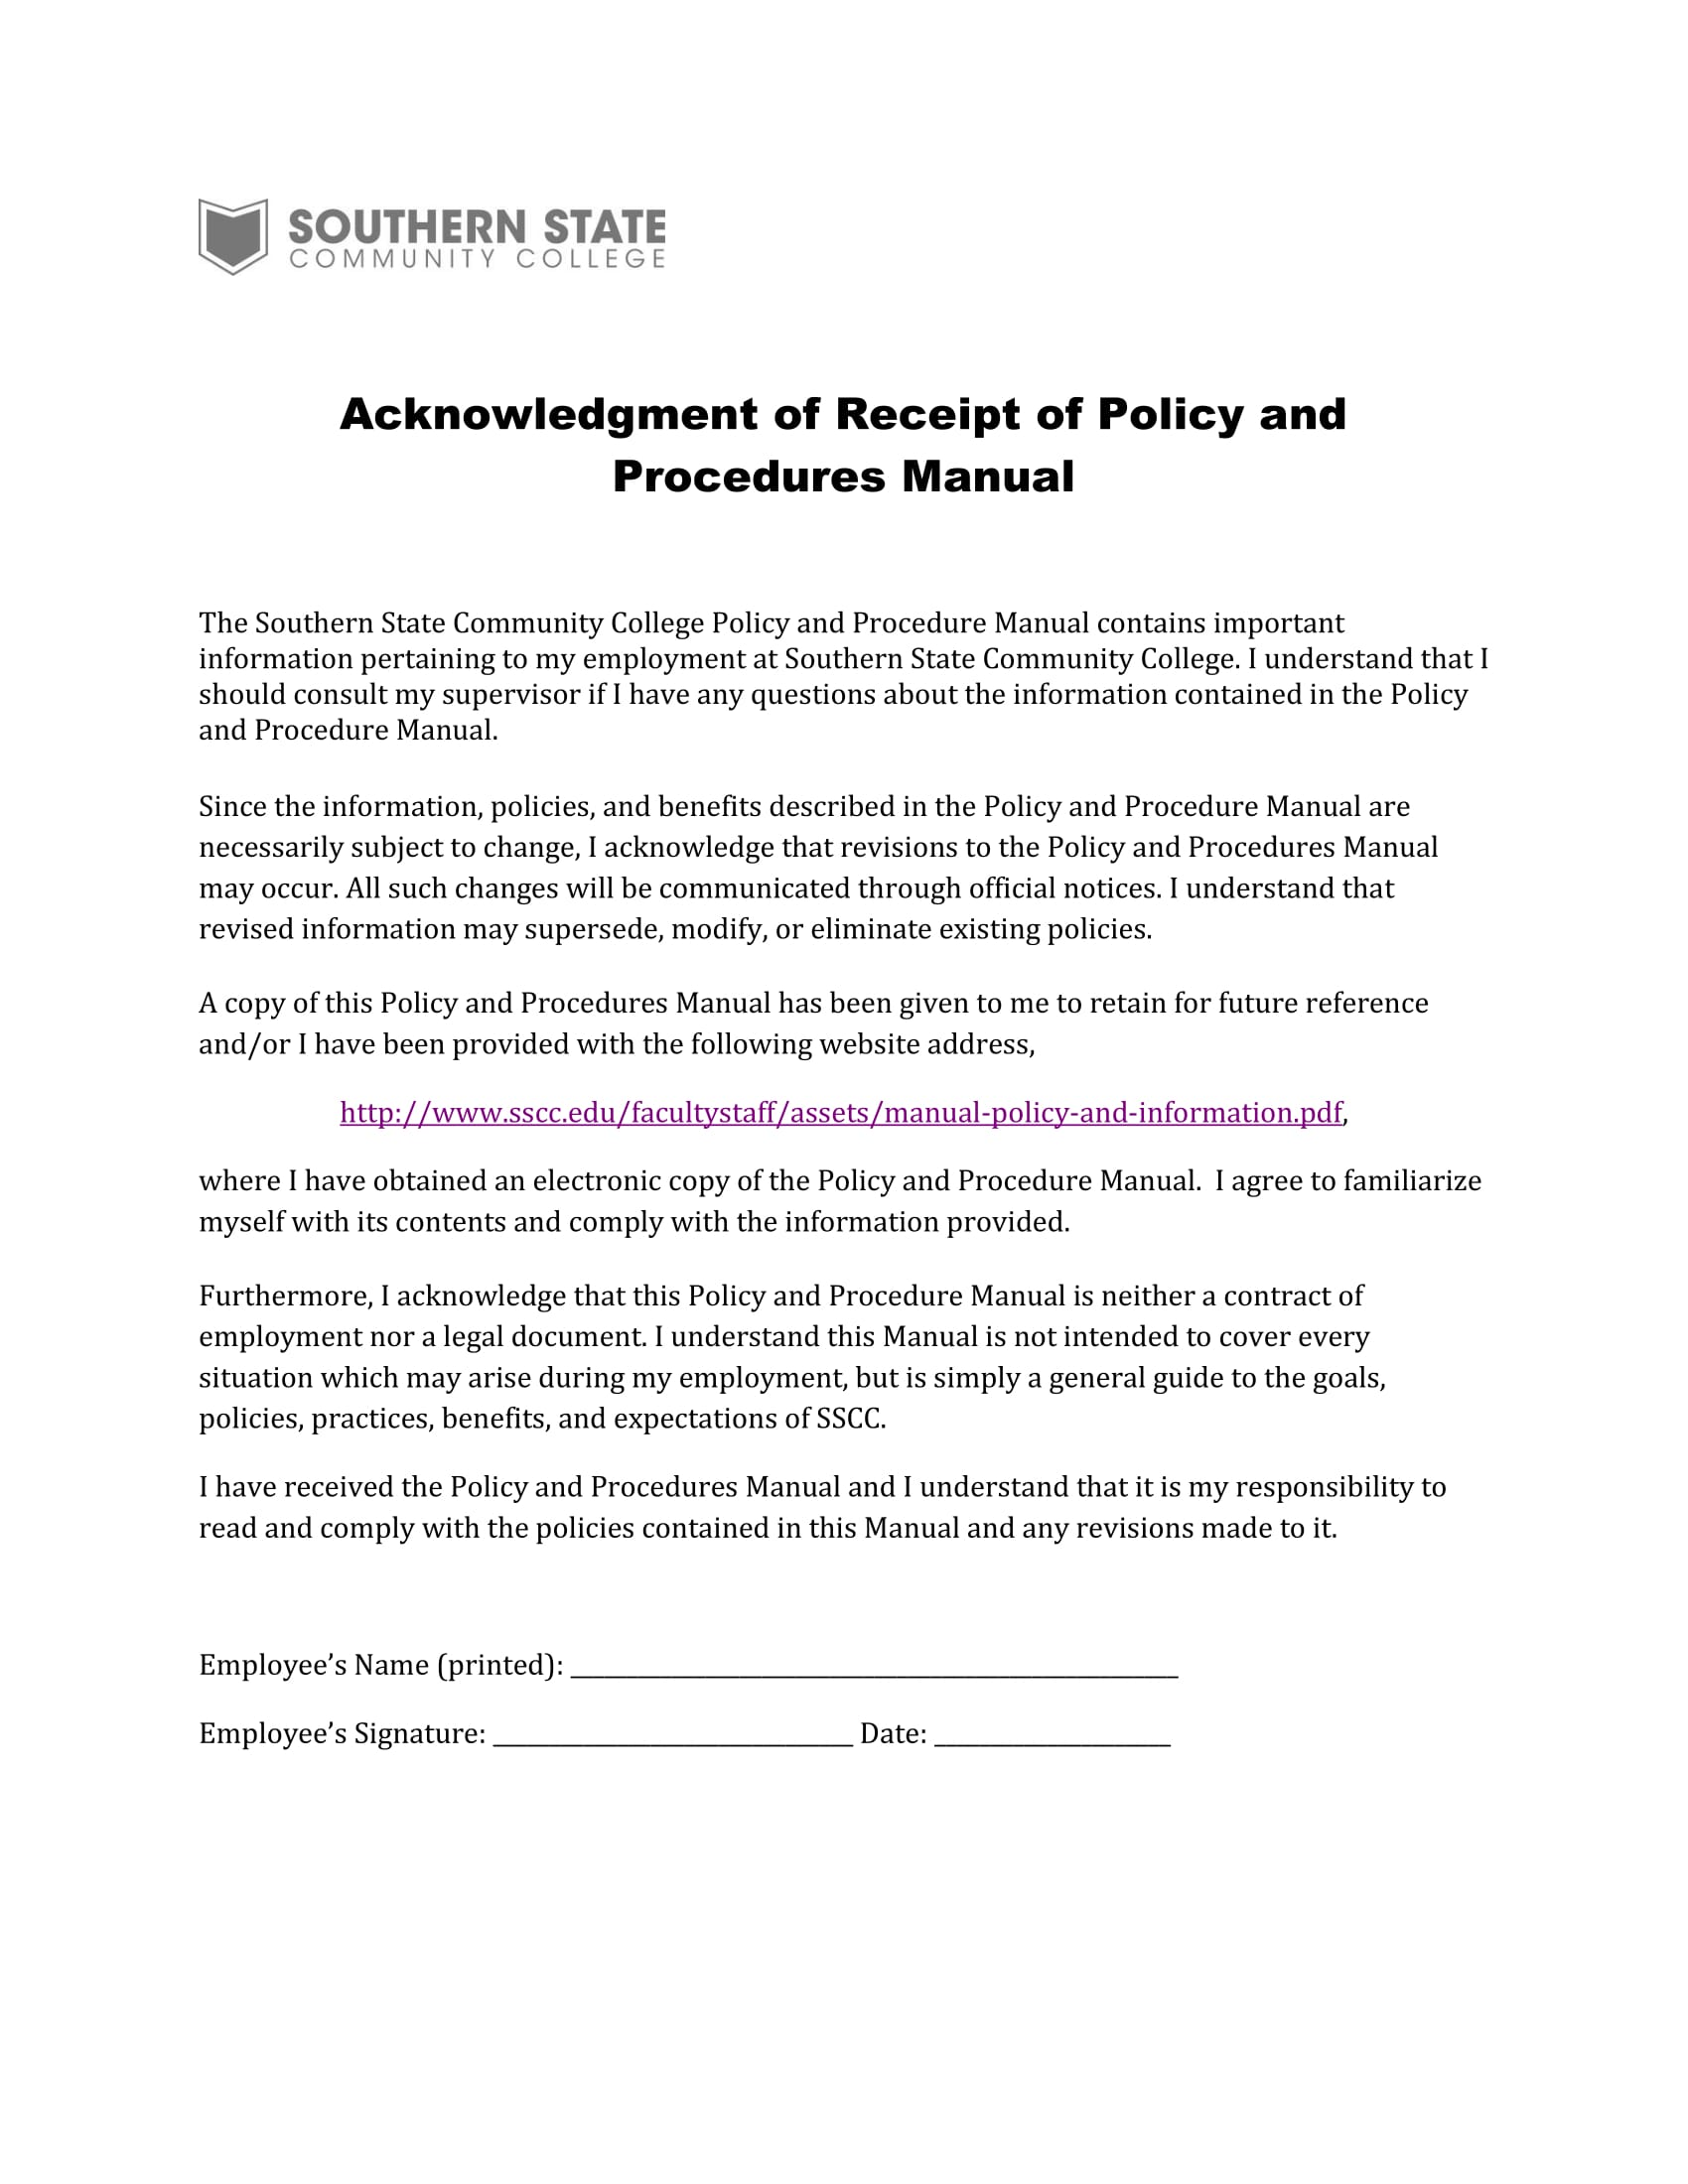 Manual Policy Acknowledgment Form